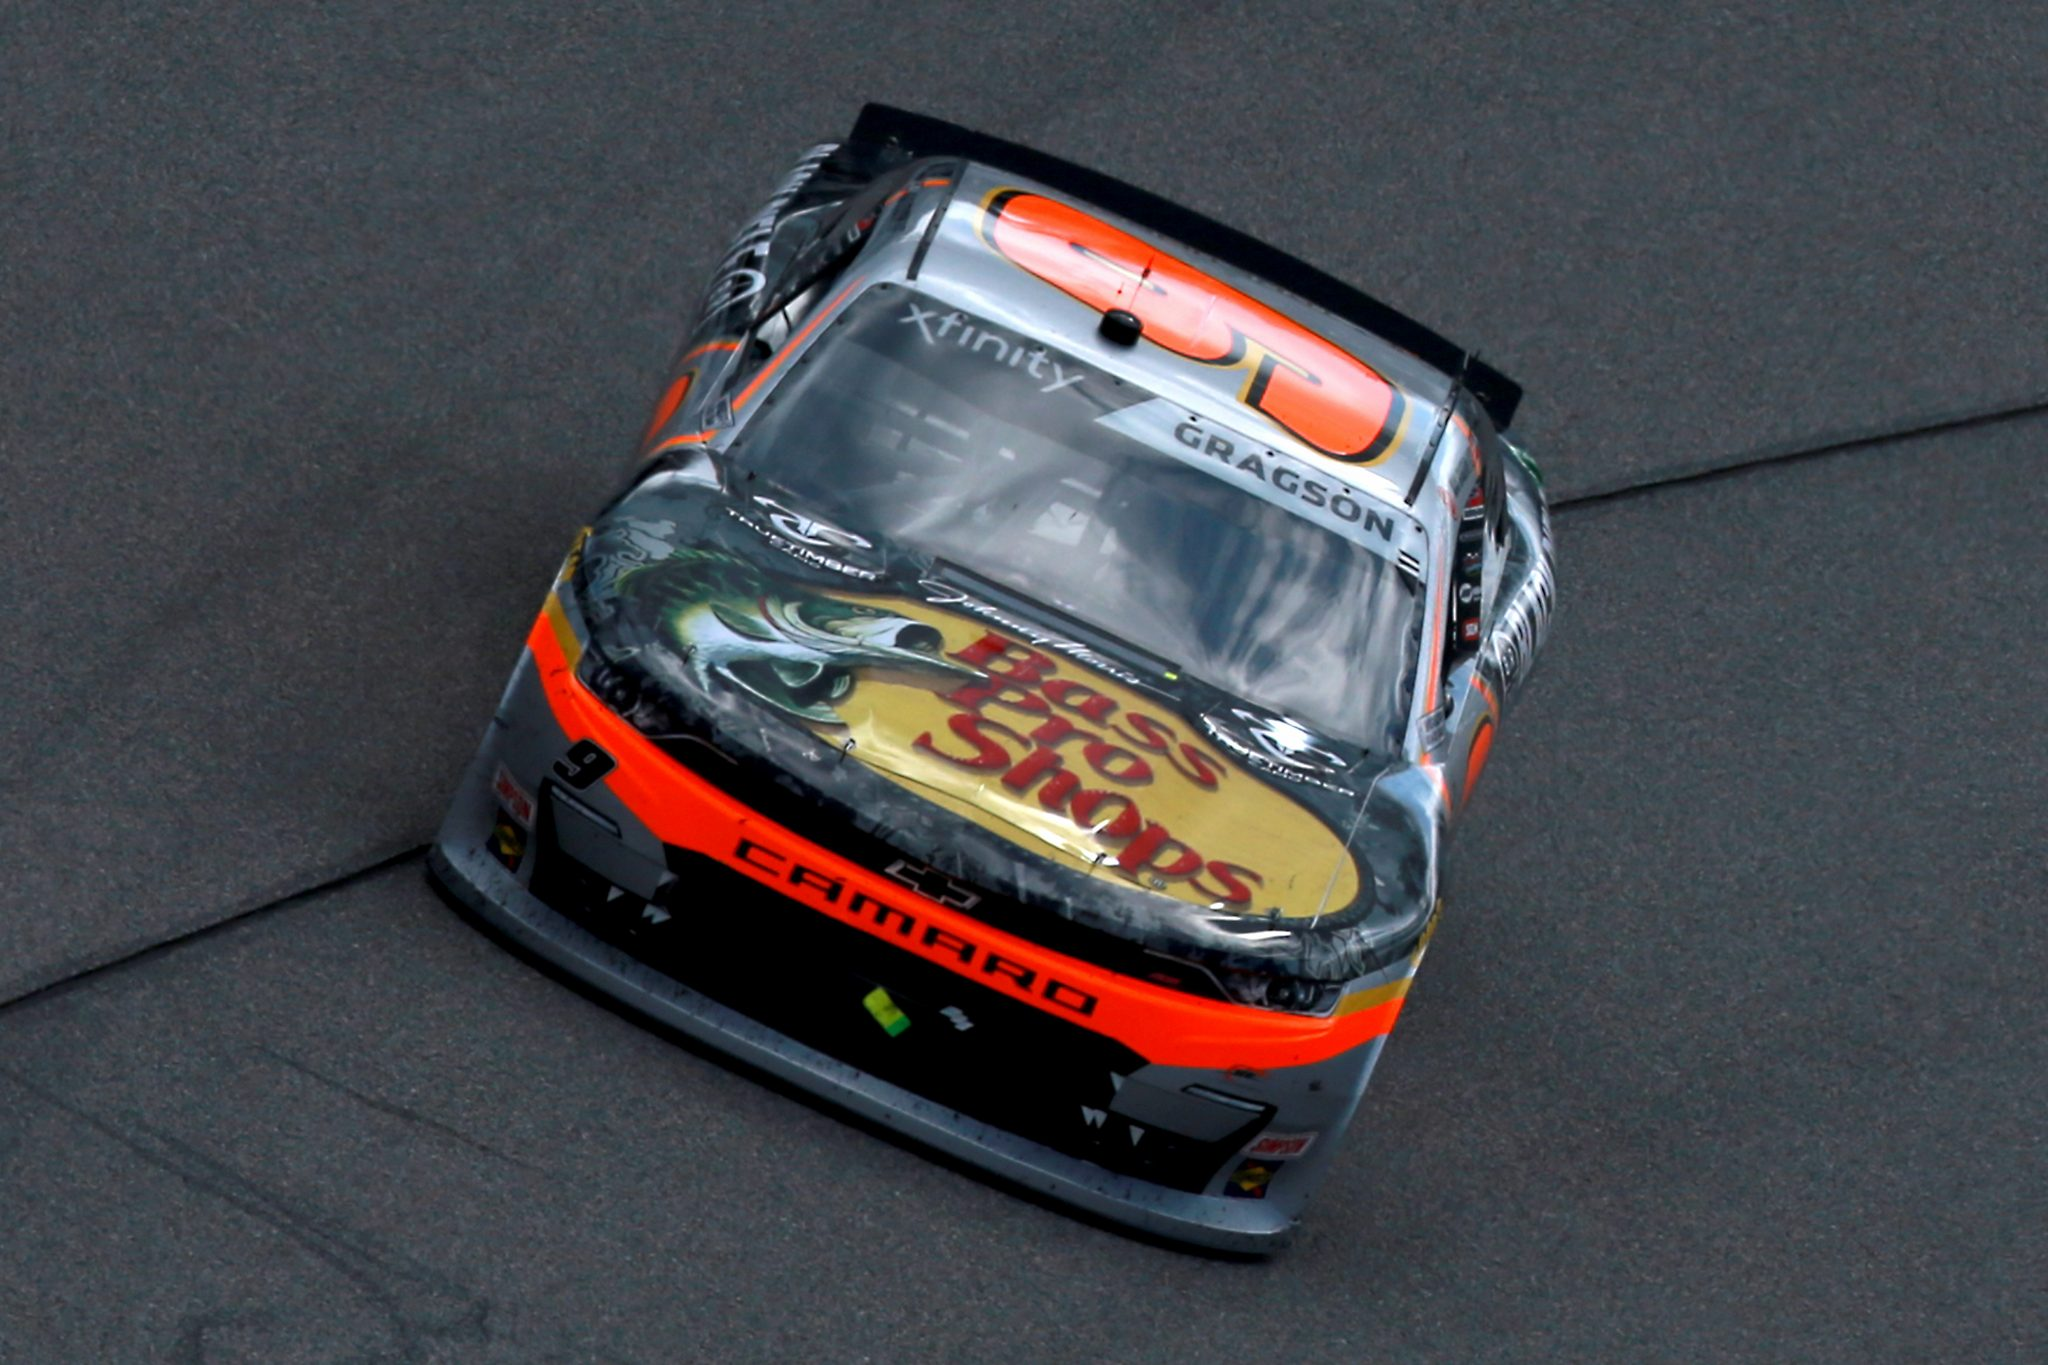 RICHMOND, VIRGINIA - SEPTEMBER 12: Noah Gragson, driver of the #9 Bass Pro Shops/TrueTimber Camo Chevrolet, drives during the NASCAR Xfinity Series Virginia is for Racing Lovers 250 at Richmond Raceway on September 12, 2020 in Richmond, Virginia. (Photo by Sean Gardner/Getty Images) | Getty Images